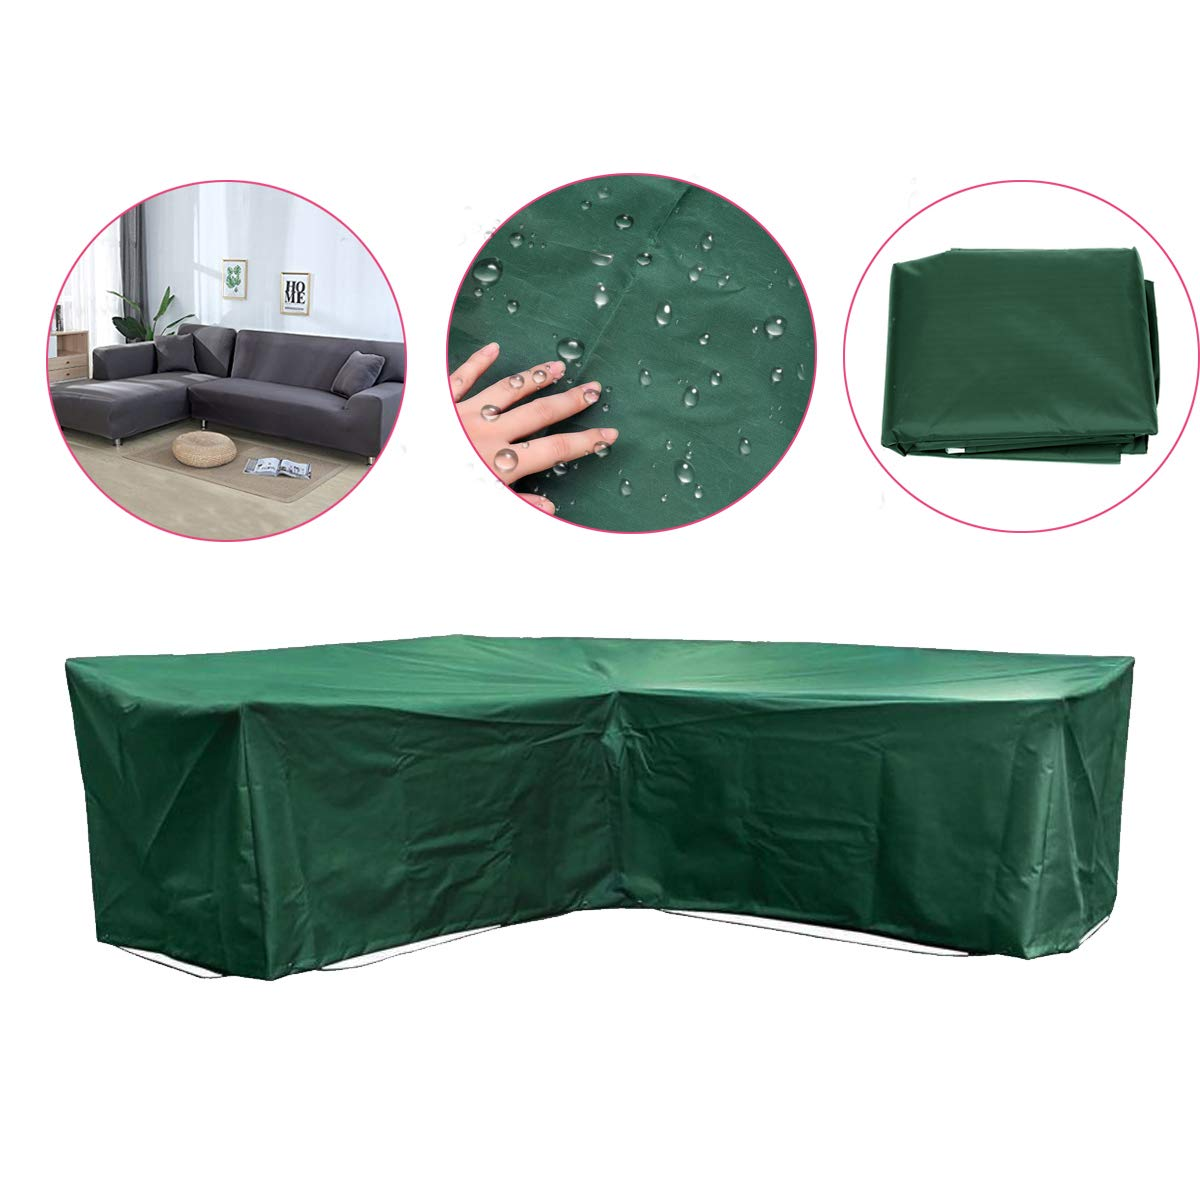 84''x84''x31'' Green Outdoor L Shape Sofa Furniture Cover  Furniture Outdoor Outside Cover Protection Canopy Awning Cloth Shade Sun Patio Garden Table Chair